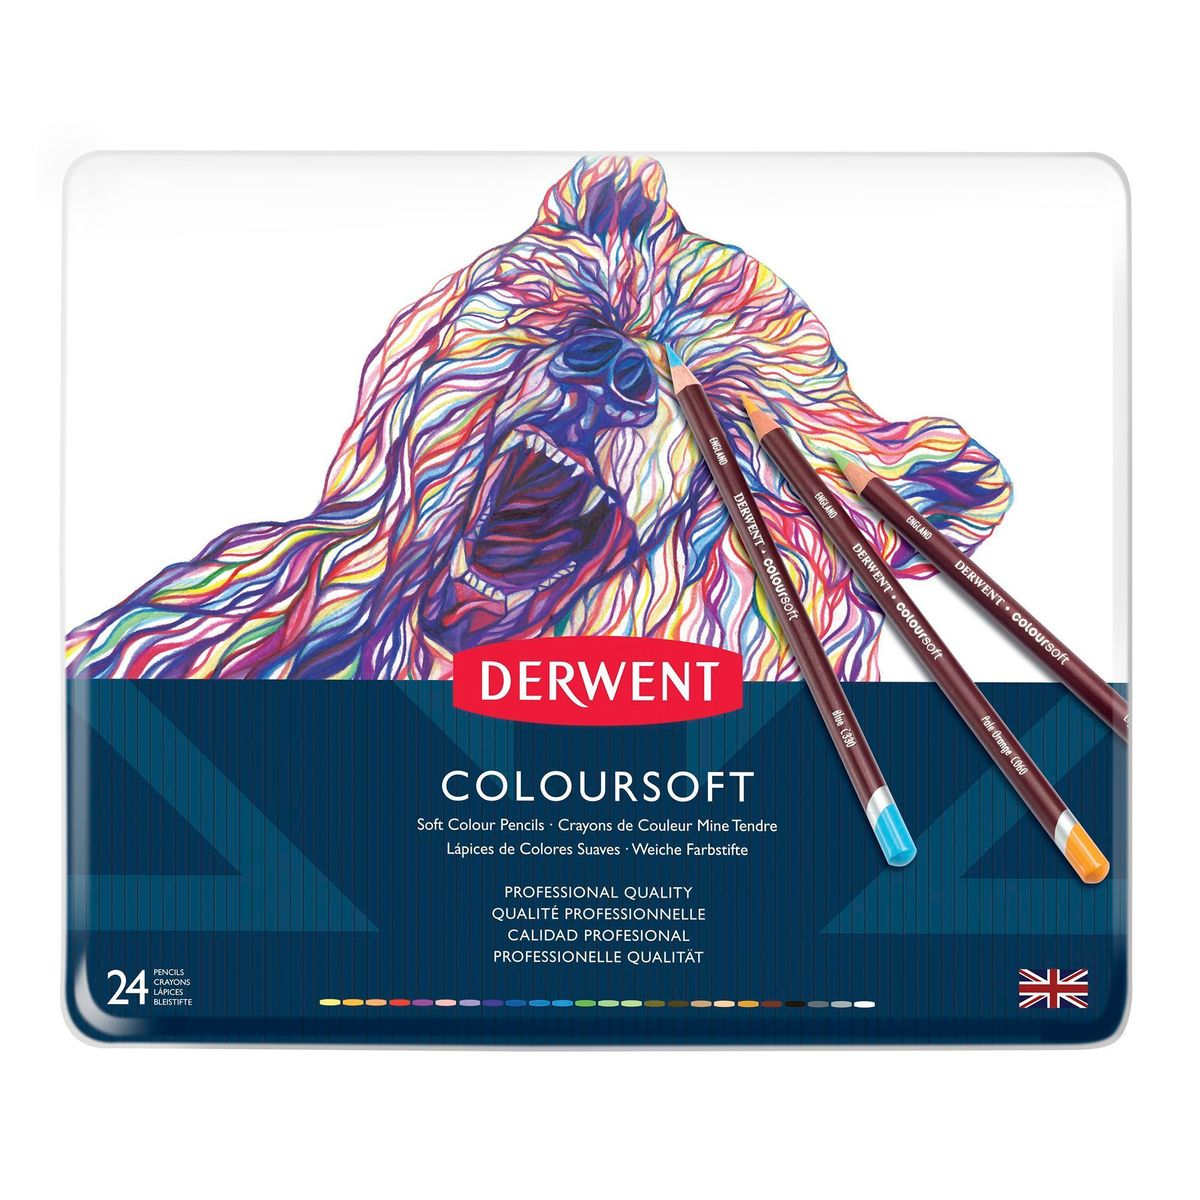 Kit Lápis Derwent Coloursoft C/ 24 Cores